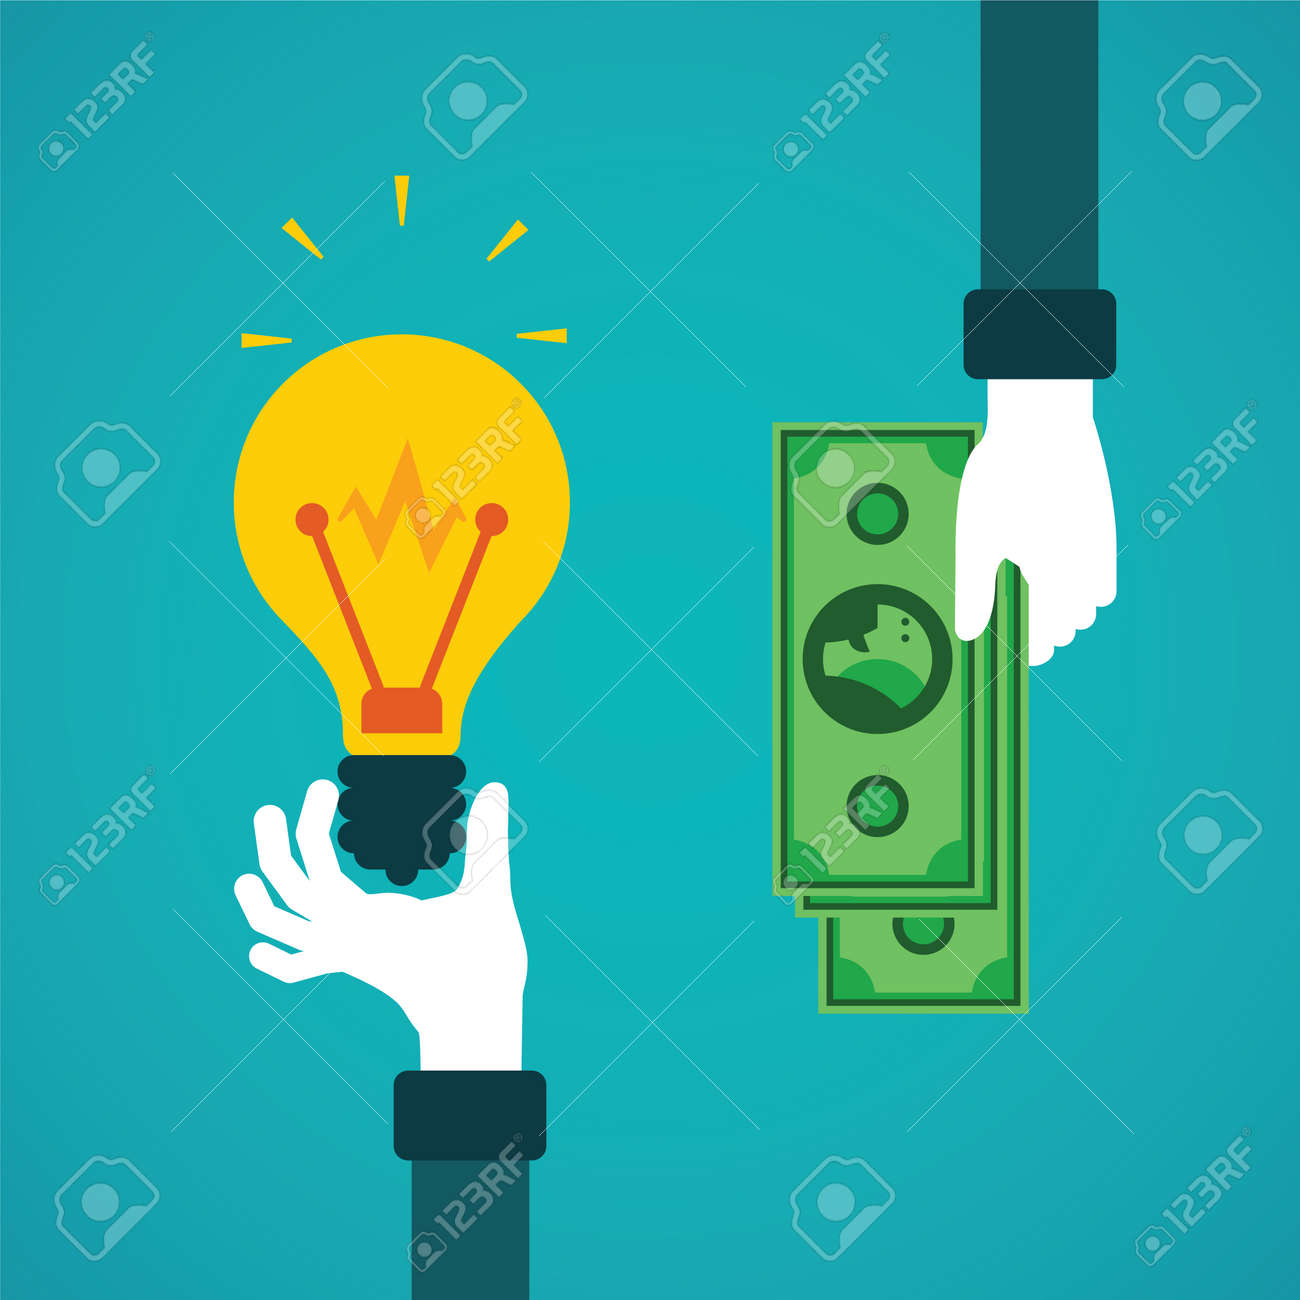 Crowdfunding or idea for money vector concept in flat style - 40403445